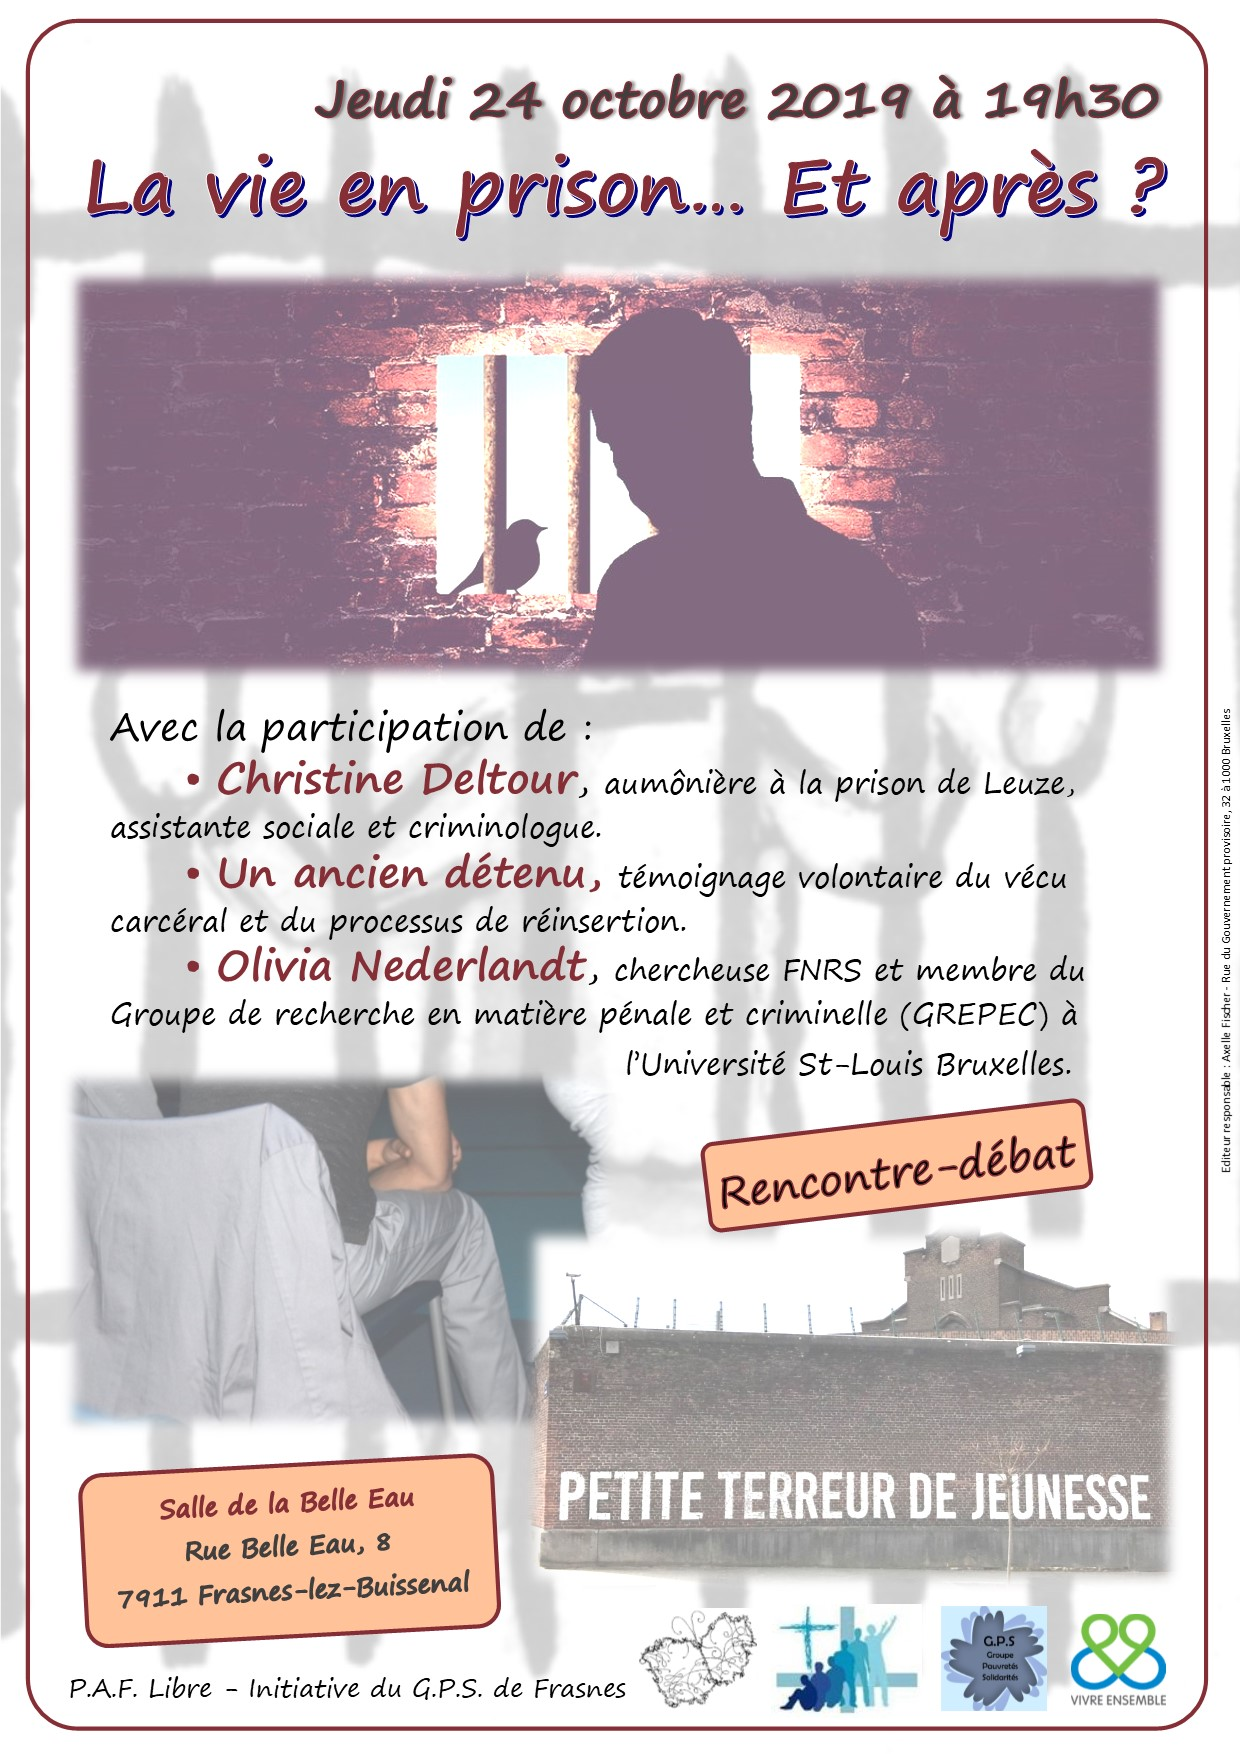 Rencontre thematique Prison 24 10 19 v4